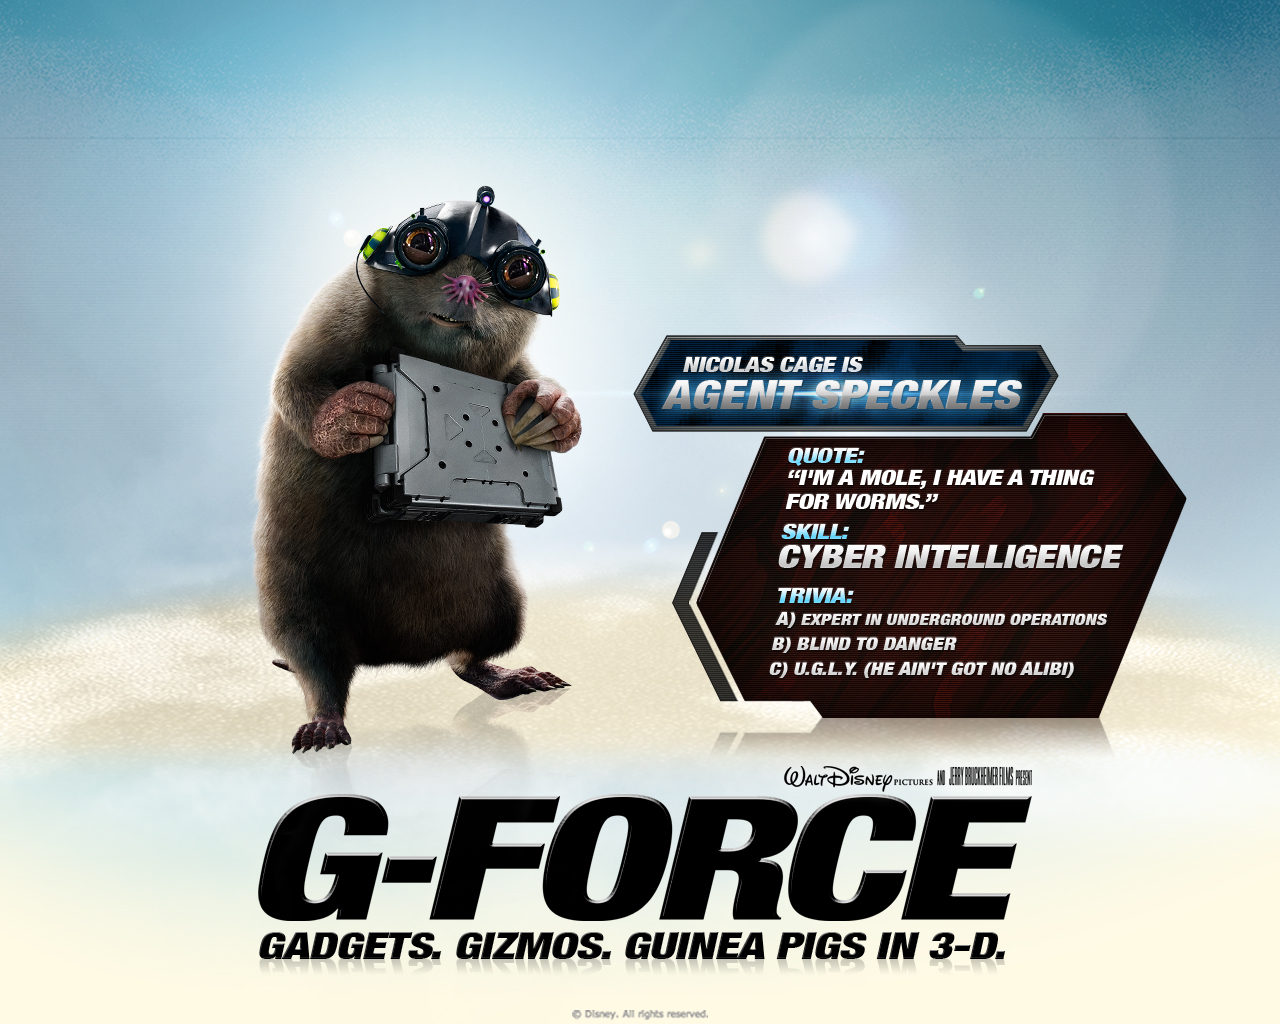 g force-agent-speckles-1280x1024